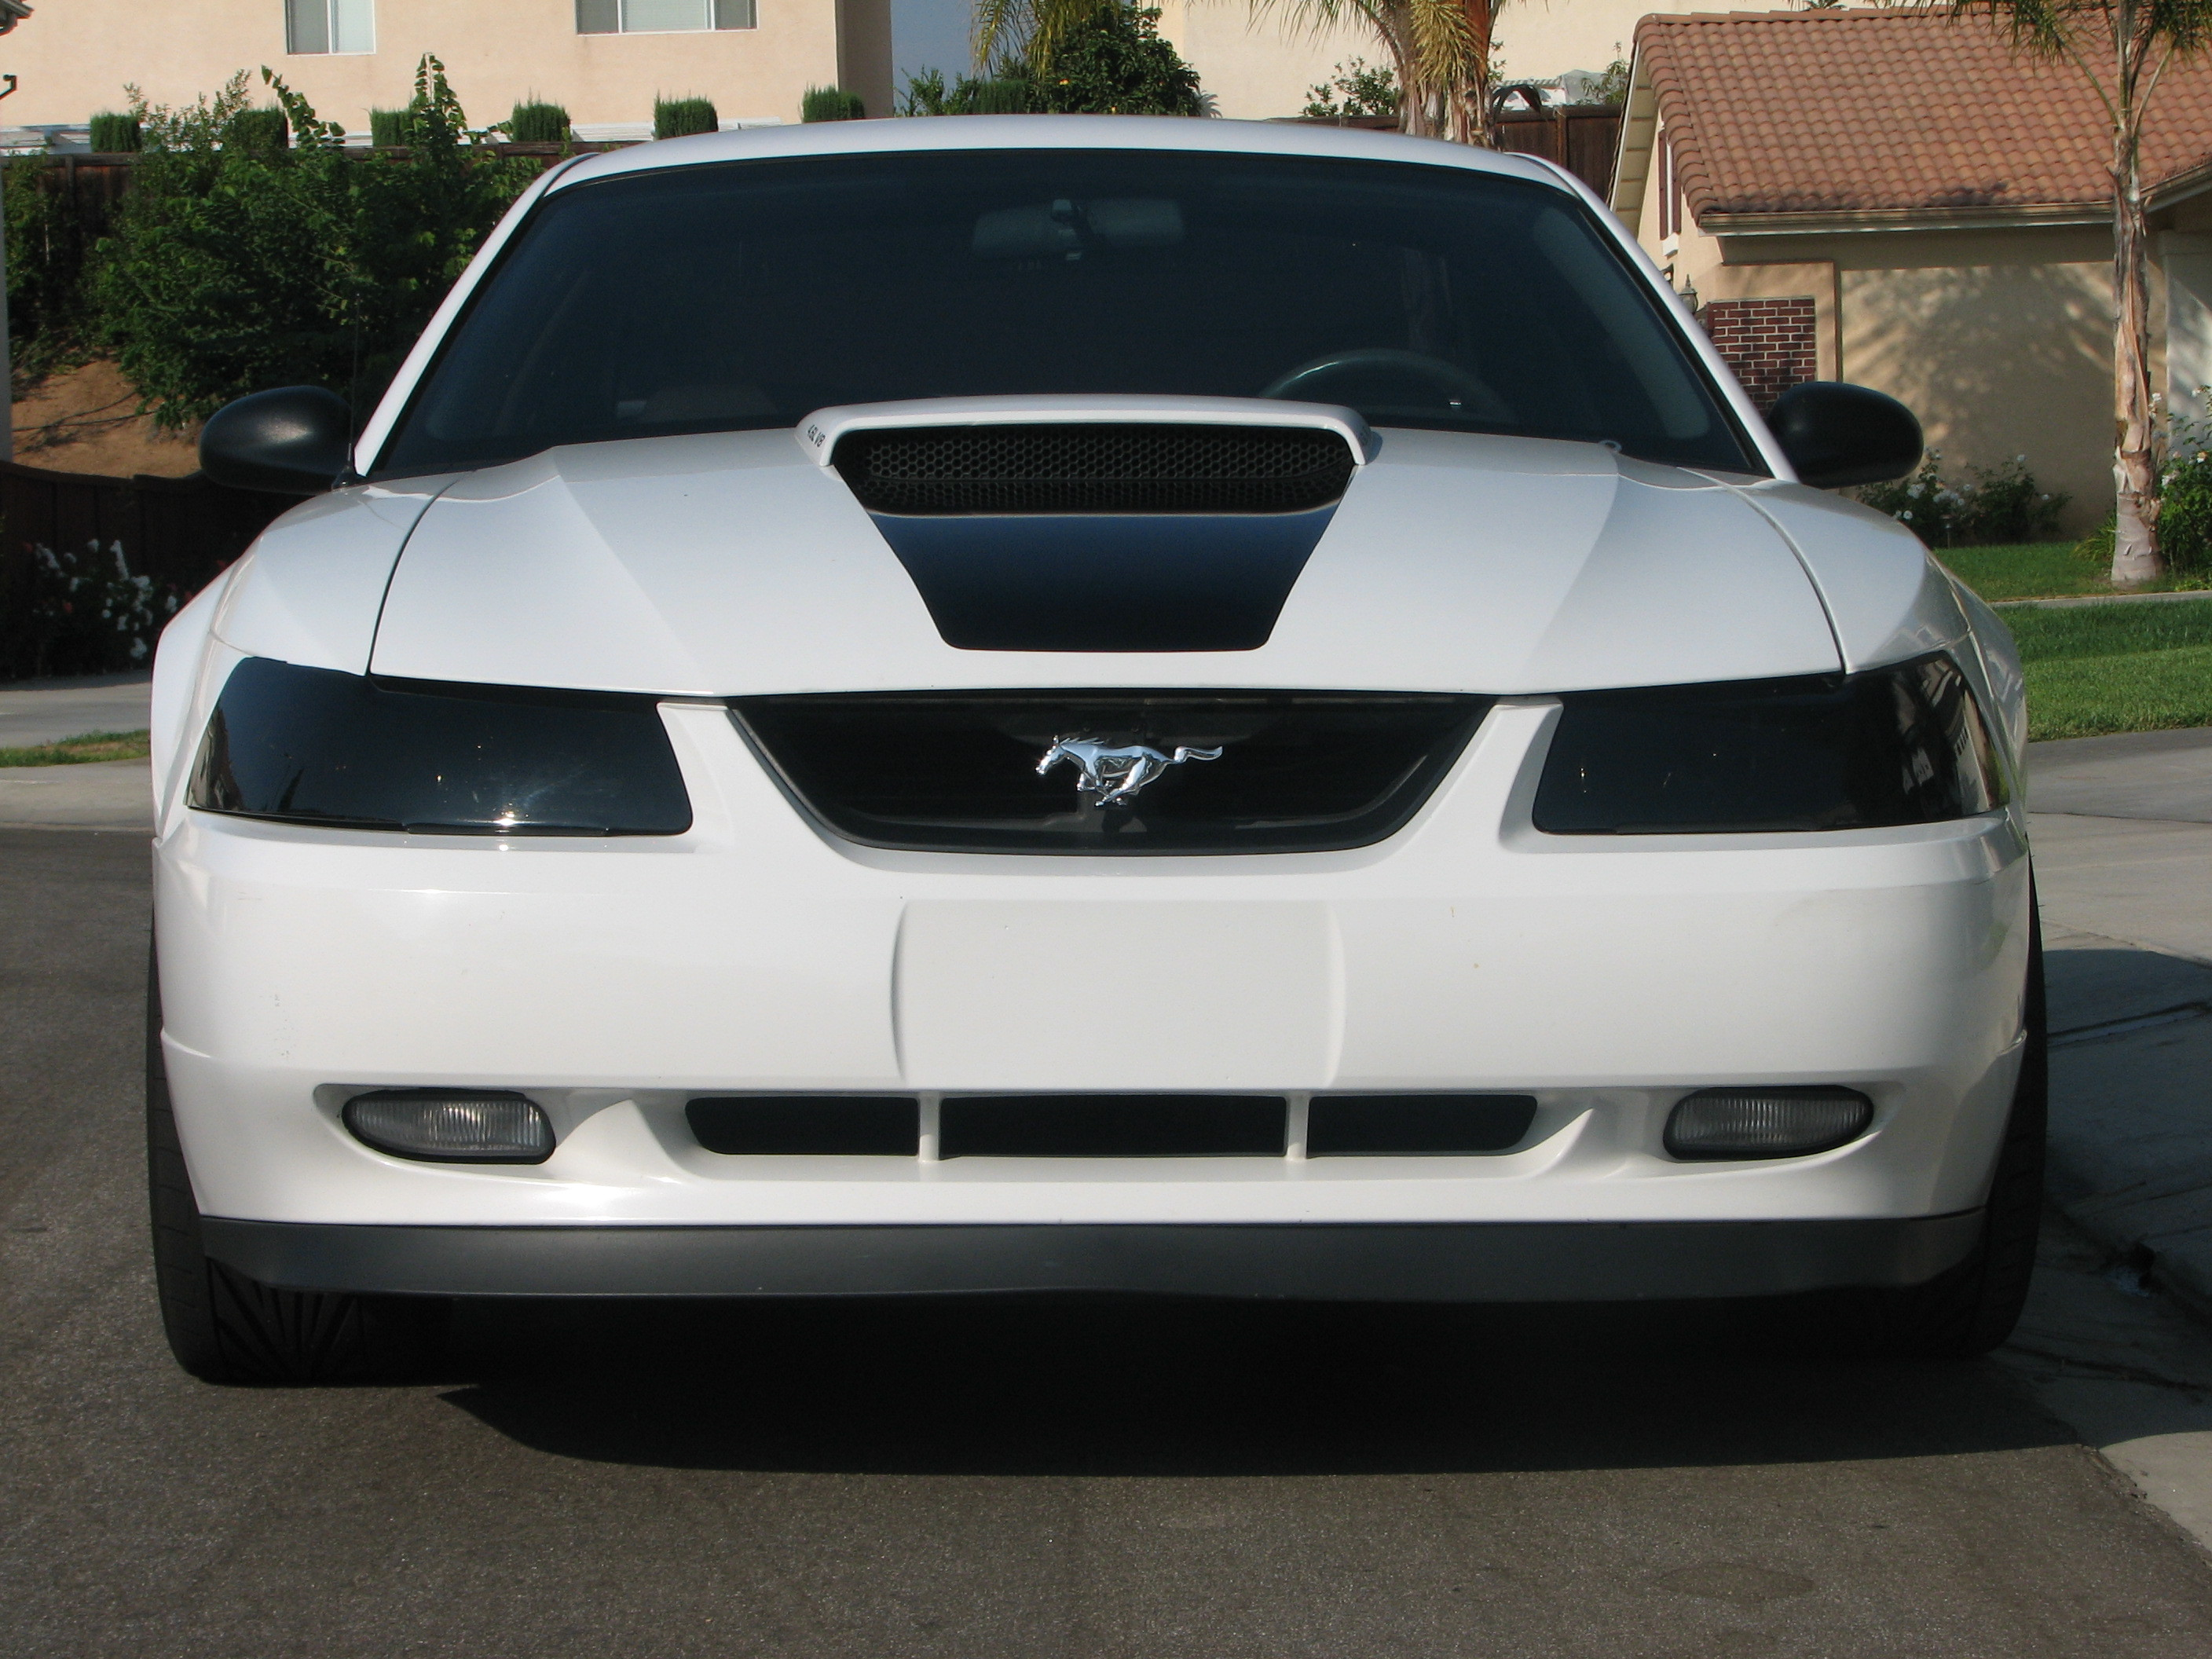 GT Mustang FTW 2001 Ford Mustang Specs s Modification Info at